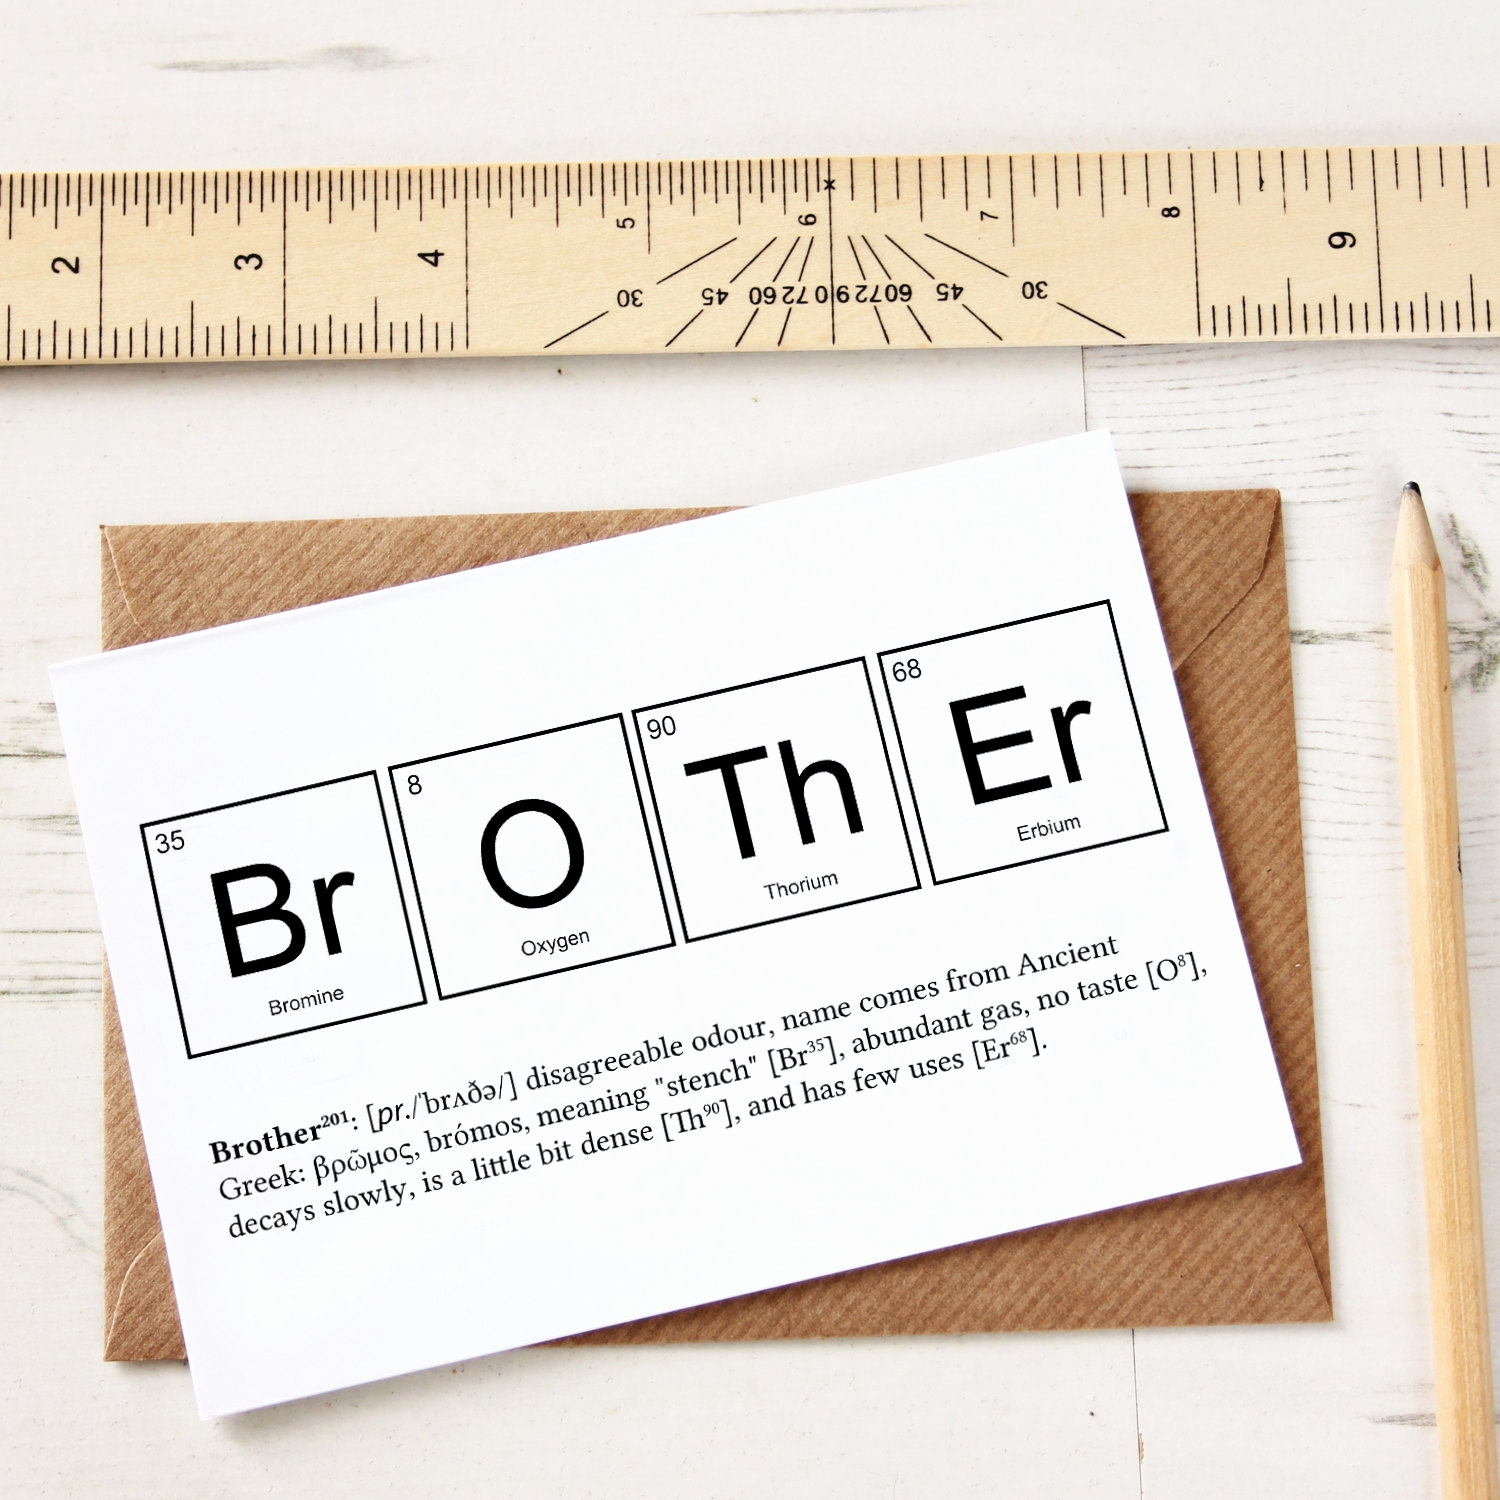 birthday card ideas for brother funny ; birthday-card-jokes-luxury-funny-brother-elements-cards-funny-sibling-joke-greeting-of-birthday-card-jokes